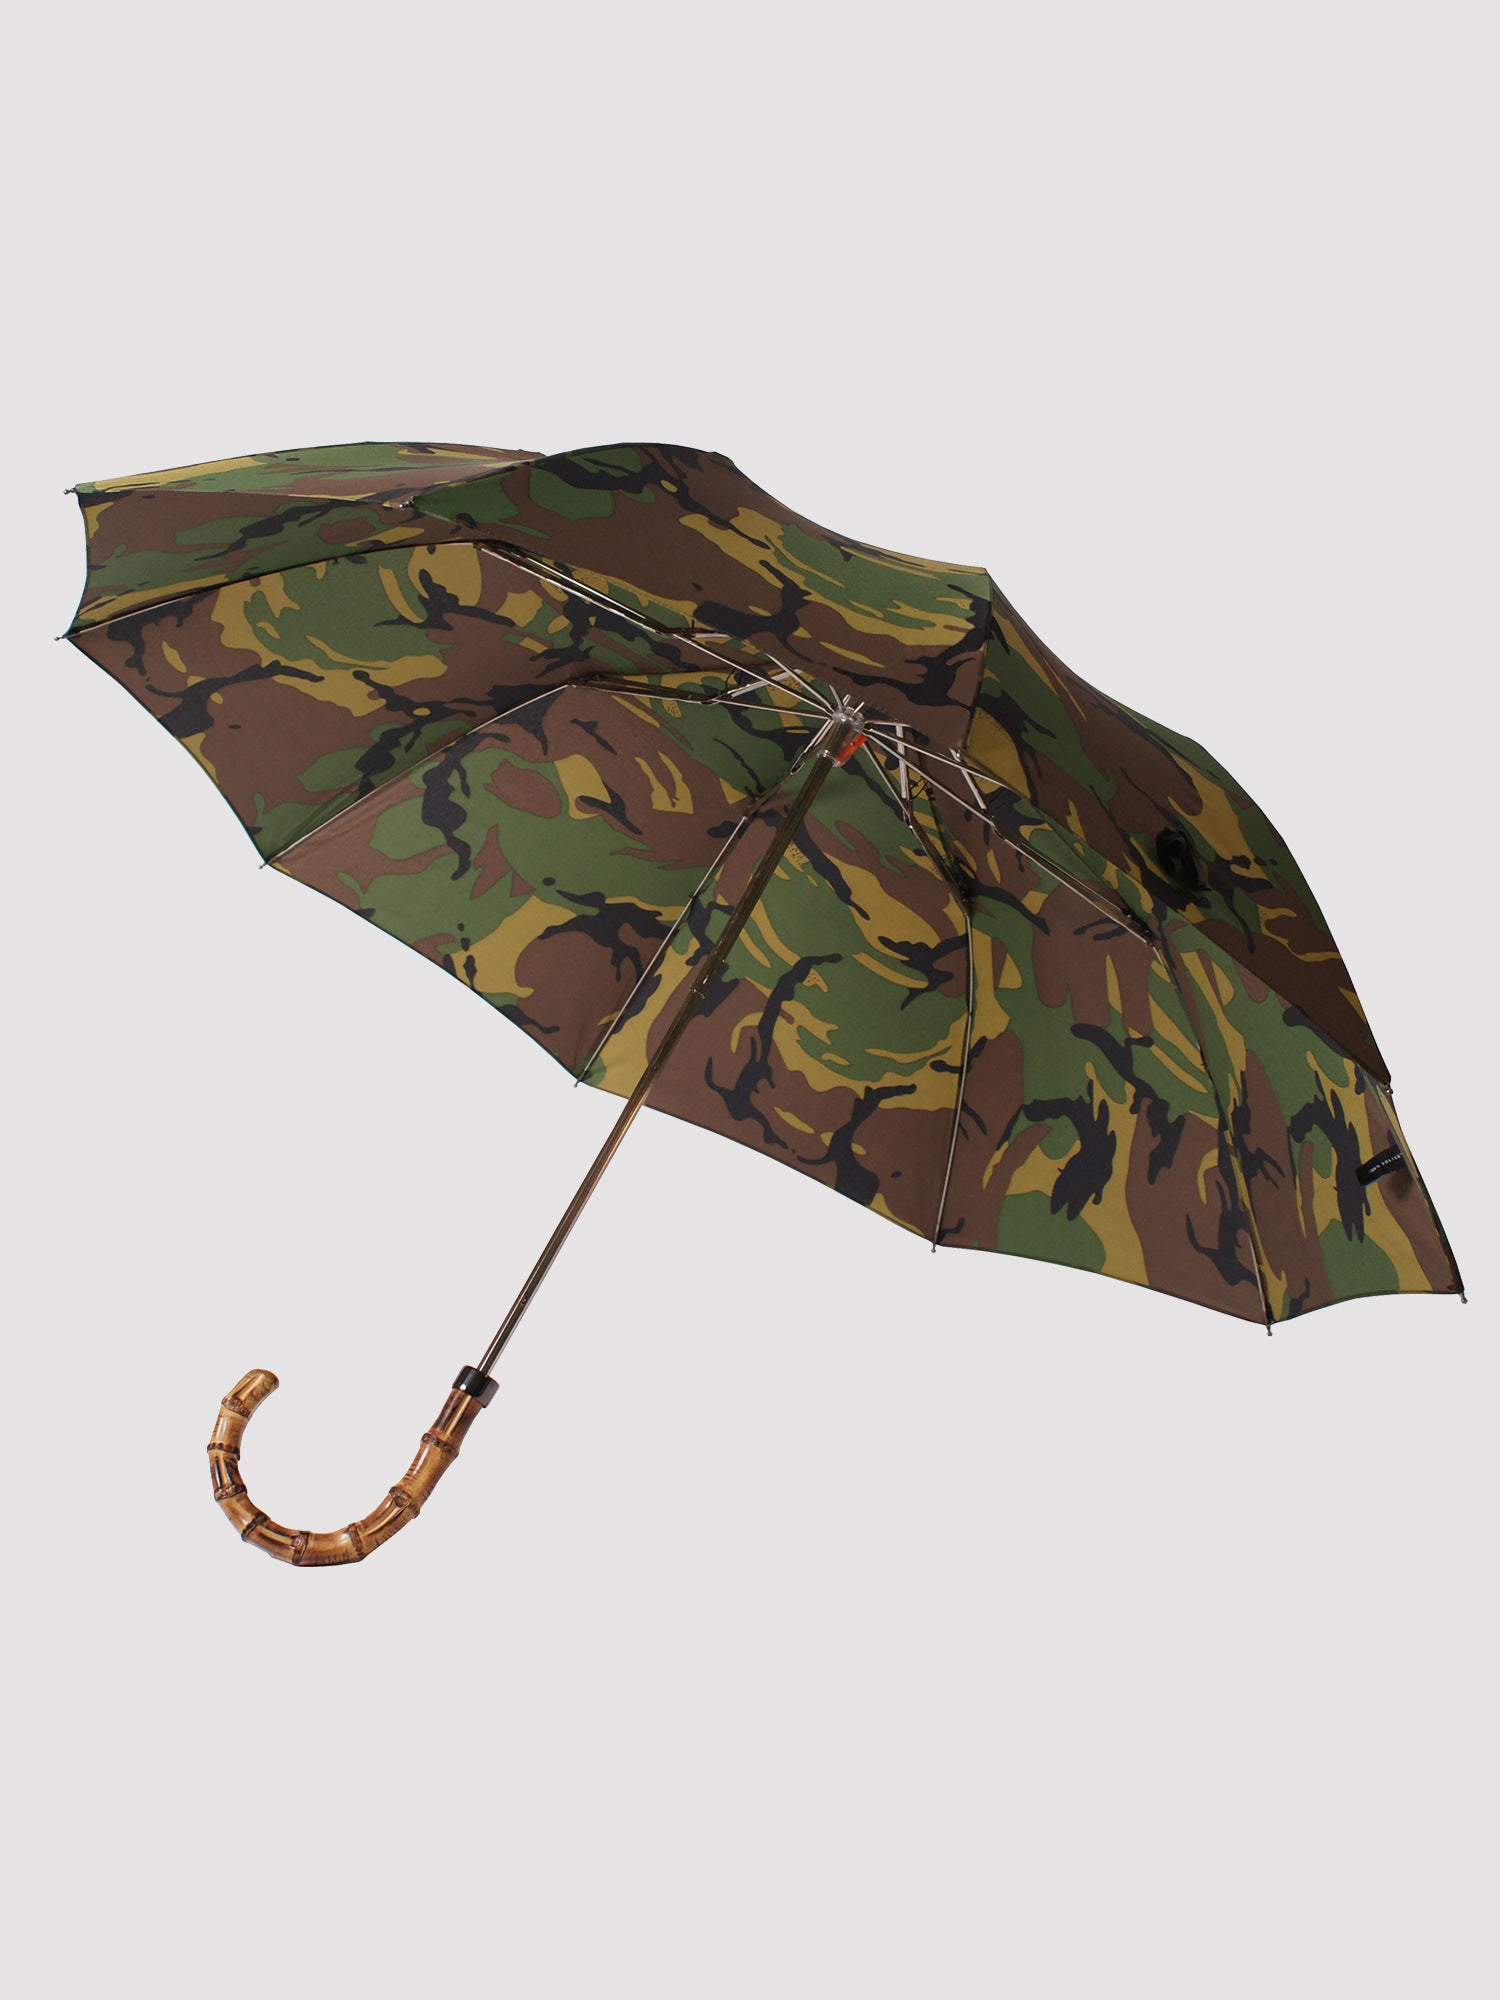 Wangee Cane Crook Telescopic, Woodland Camouflage